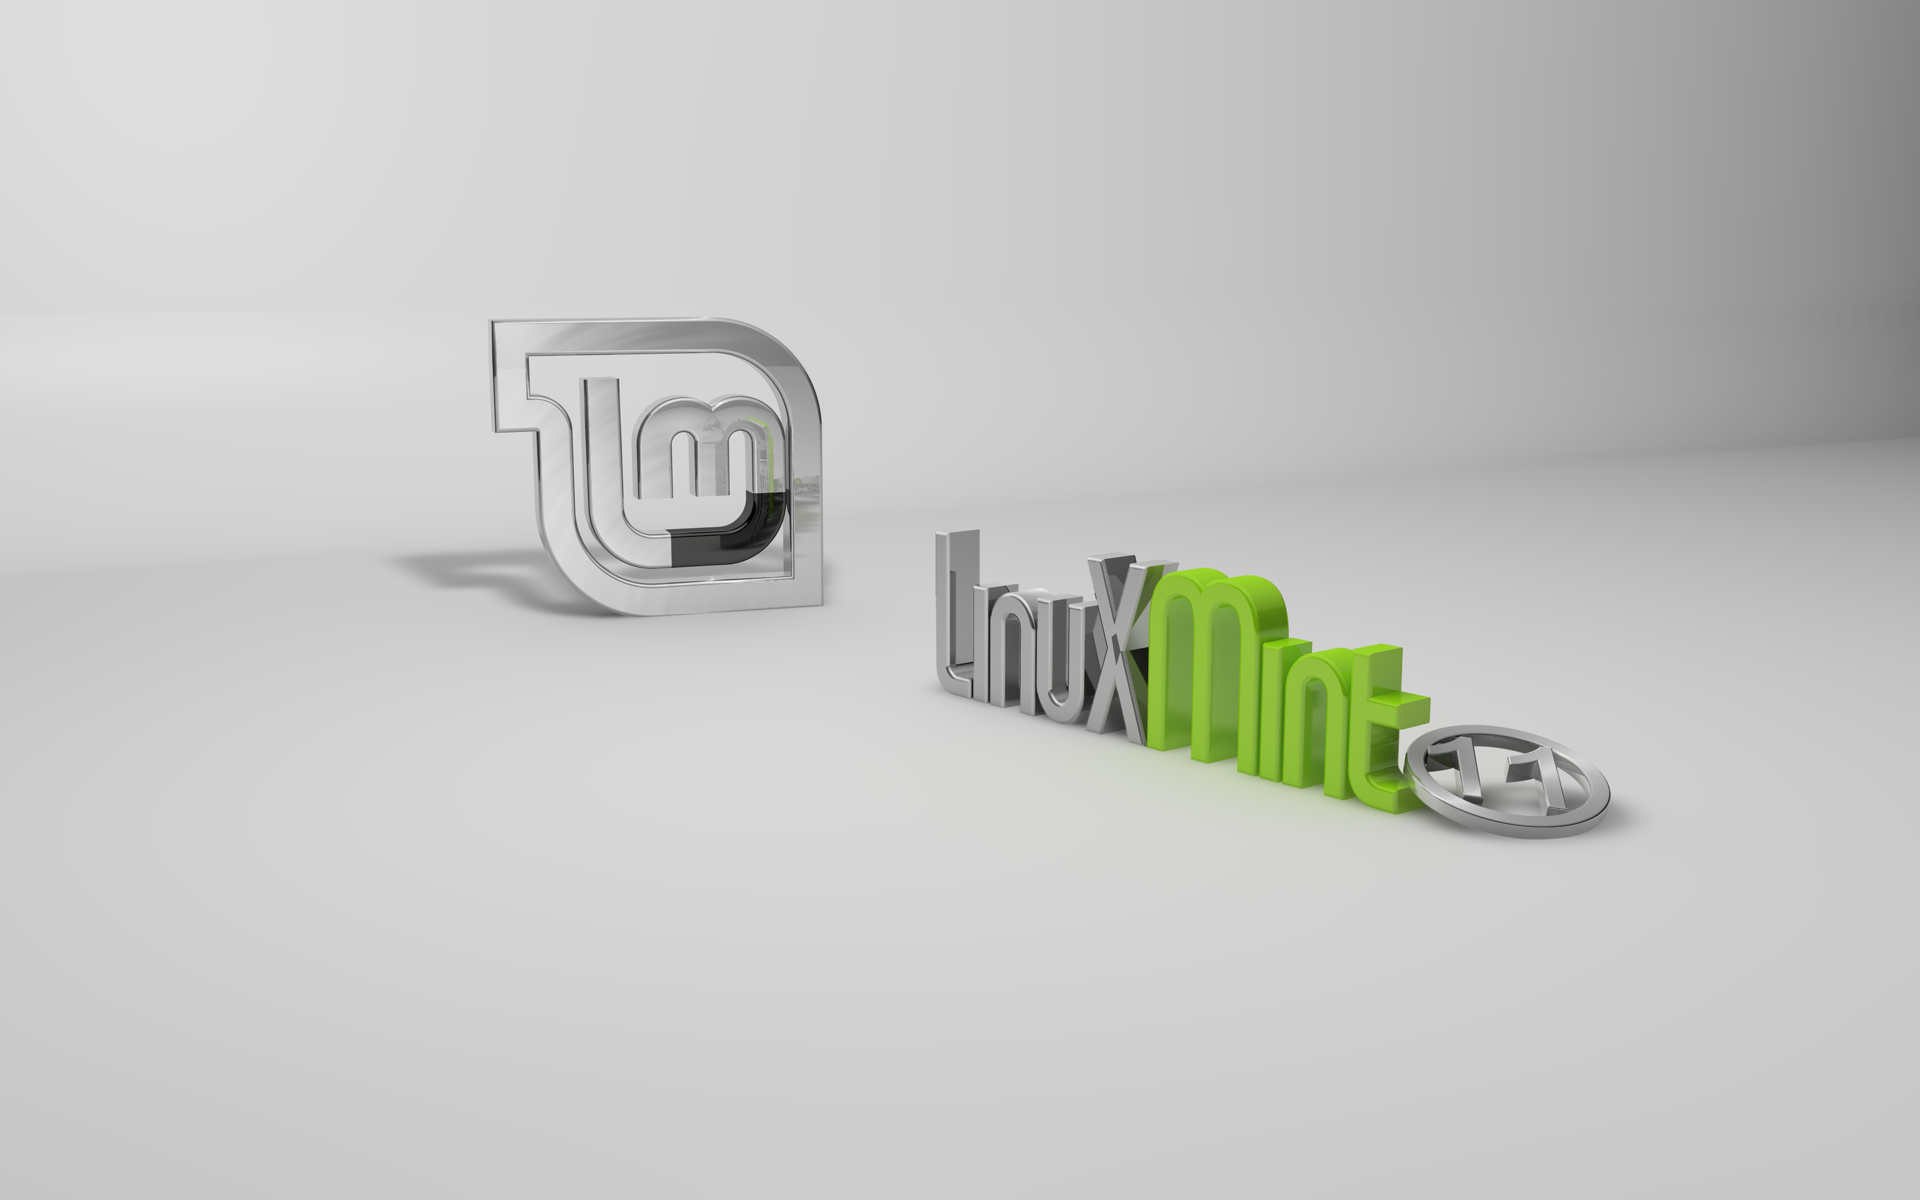 Linux mint clipart vector freeuse stock Linux mint clipart - ClipartFest vector freeuse stock